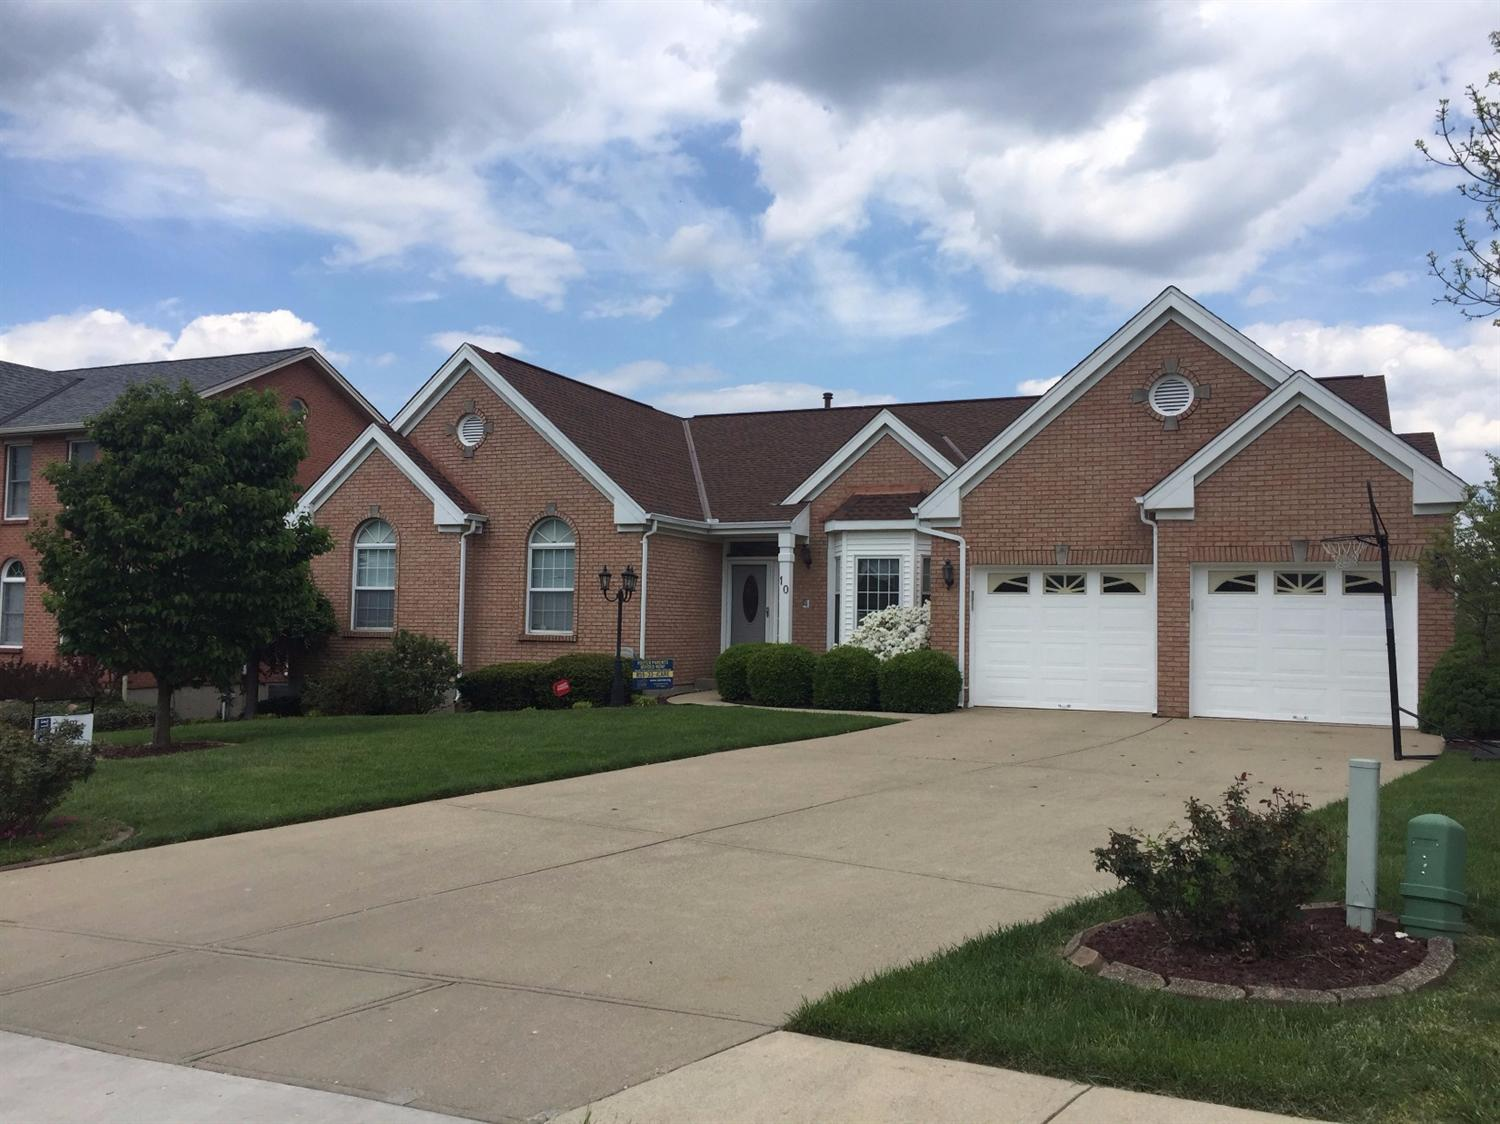 Photo 1 for 10 Fescue Ct Florence, KY 41042